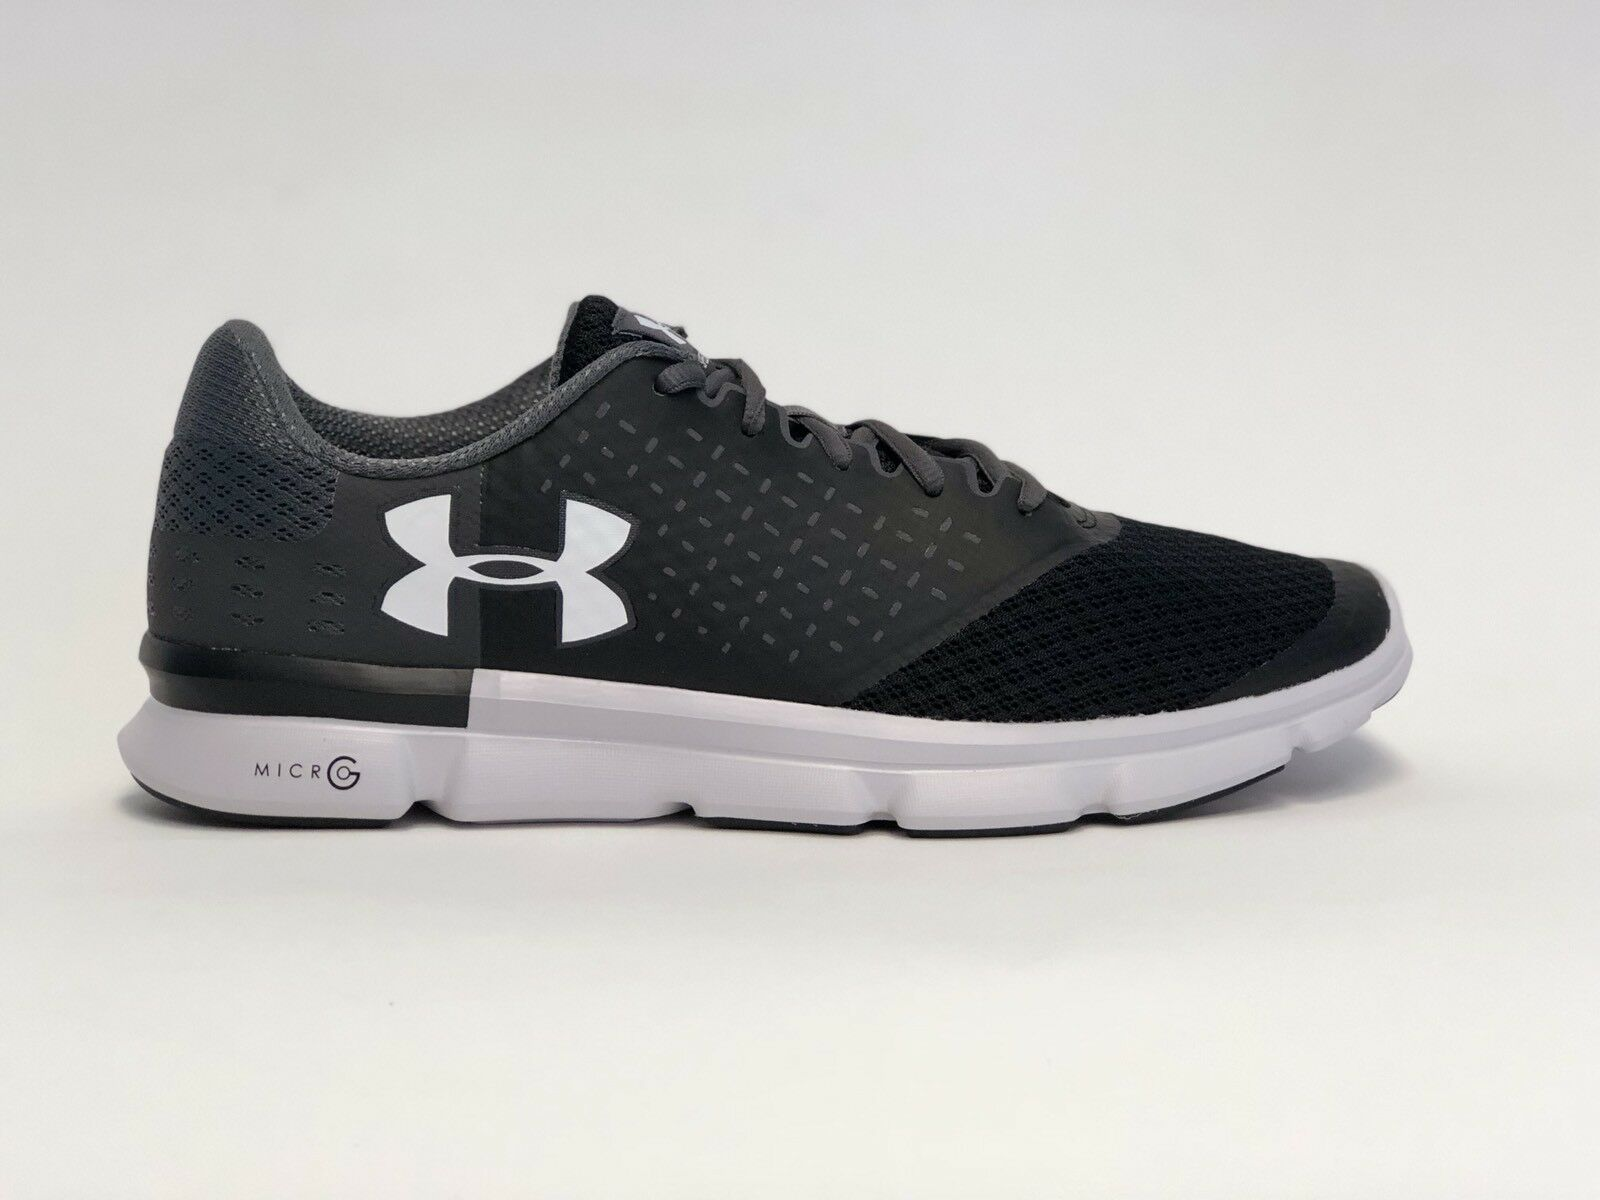 Under Armour Micro G Speed Swift 2 Size Uomo's 10.5